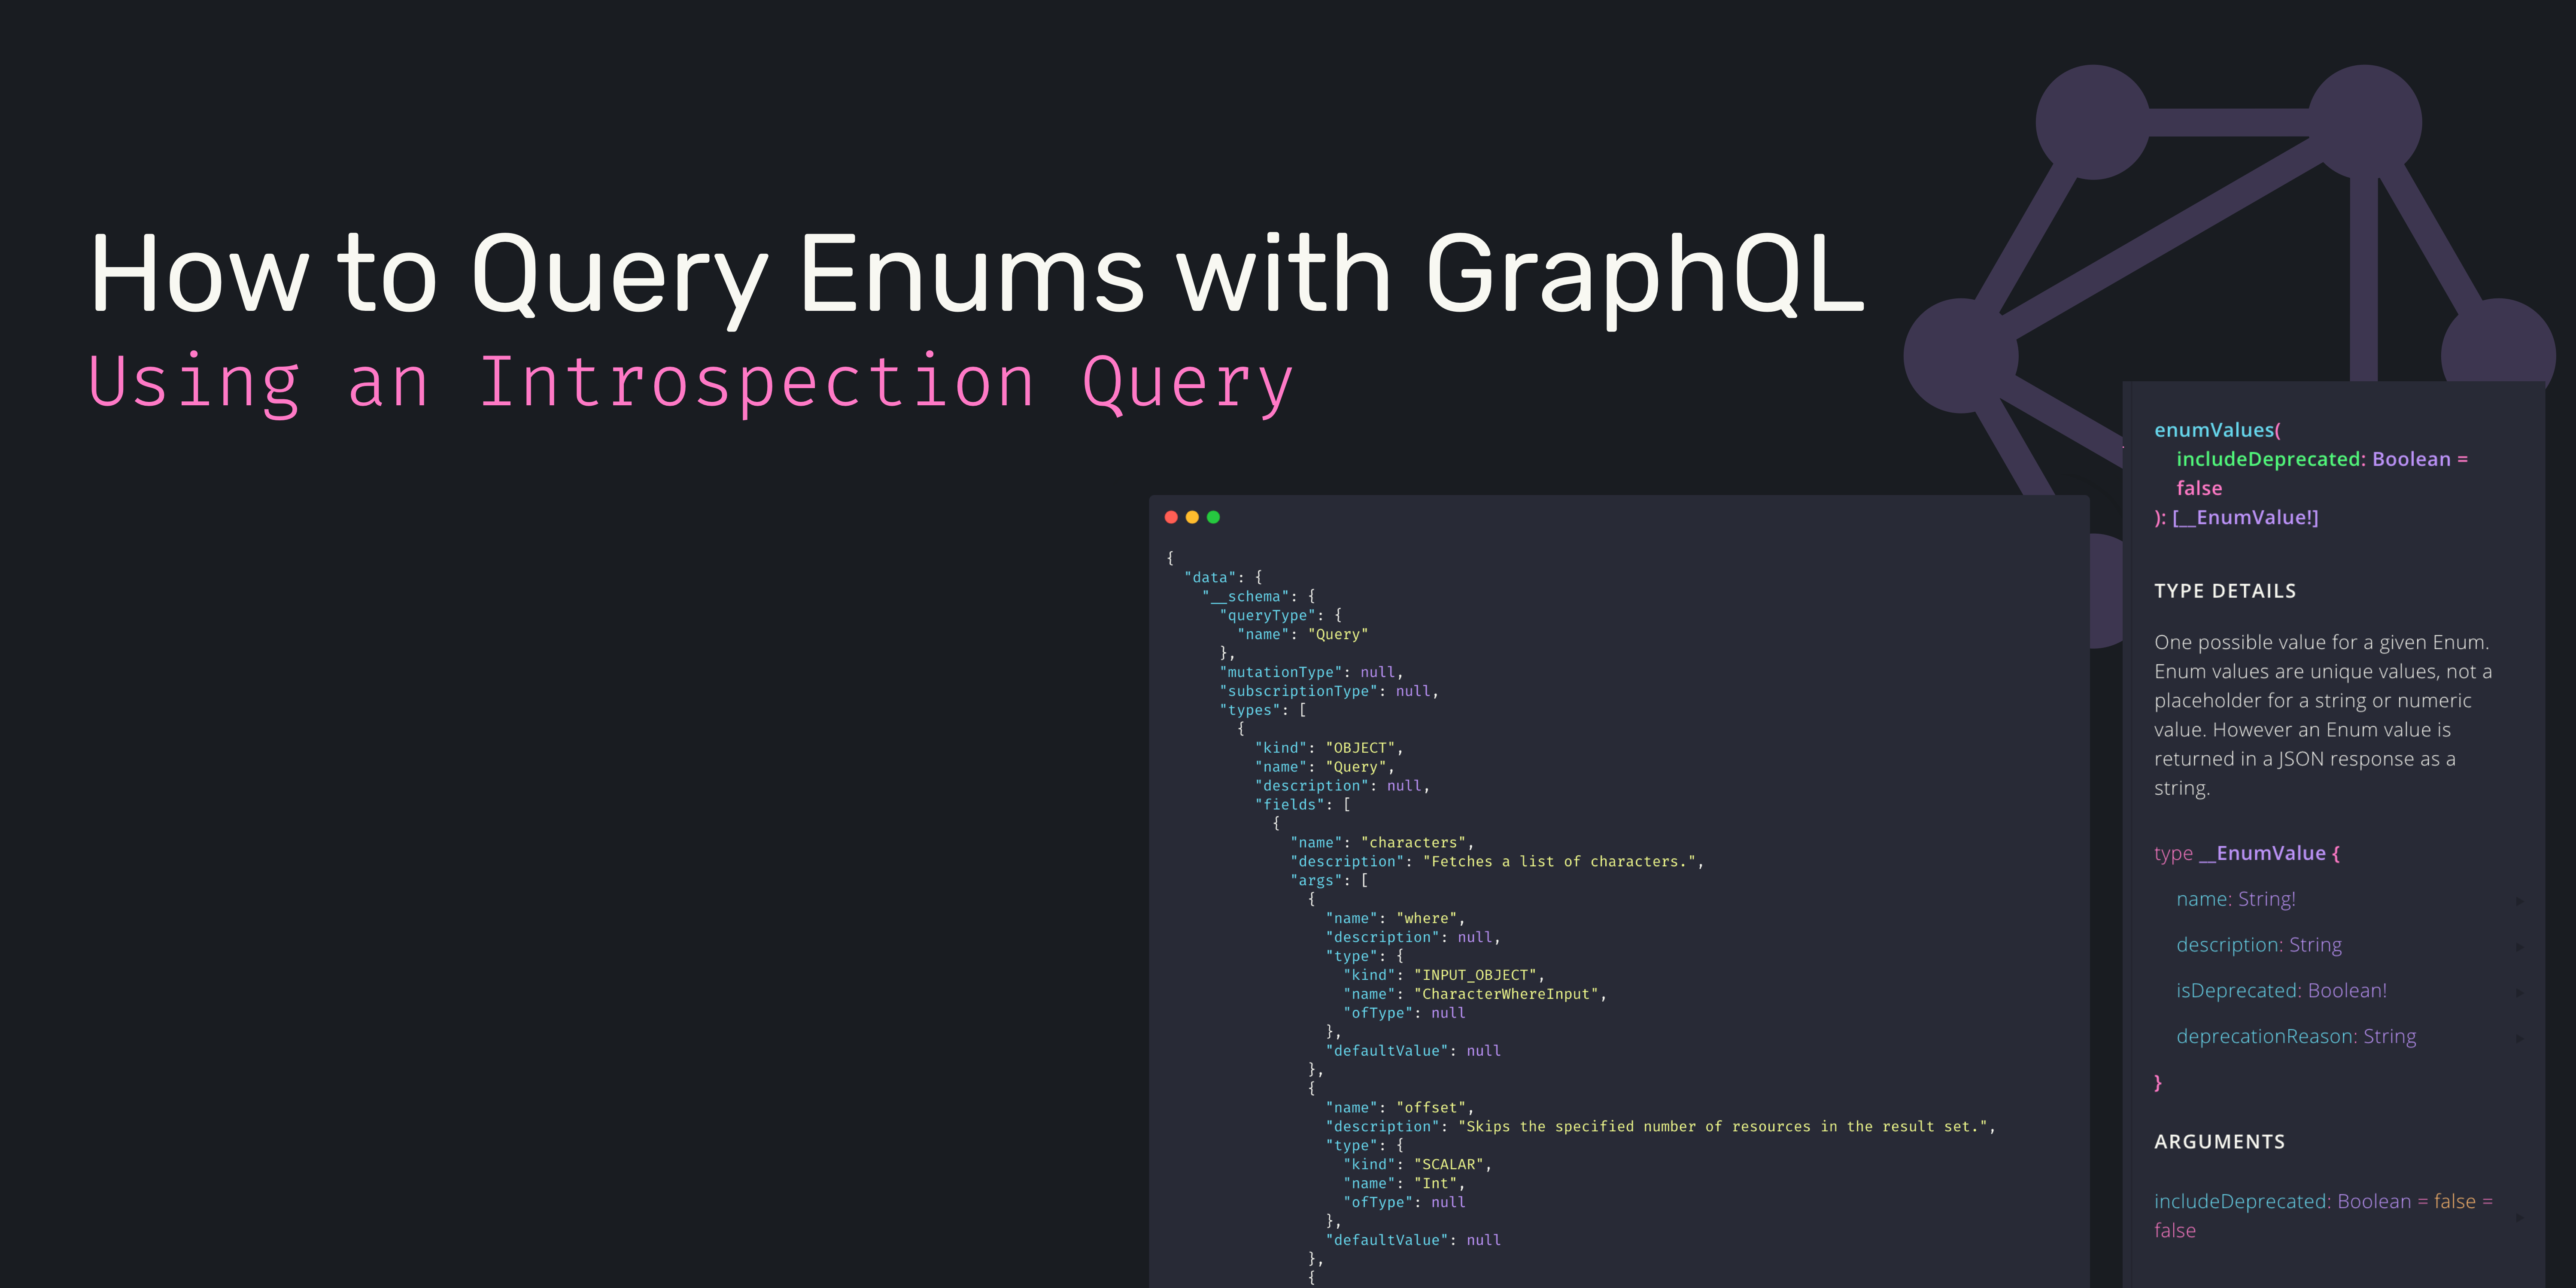 How to Query Enums with GraphQL using Introspection